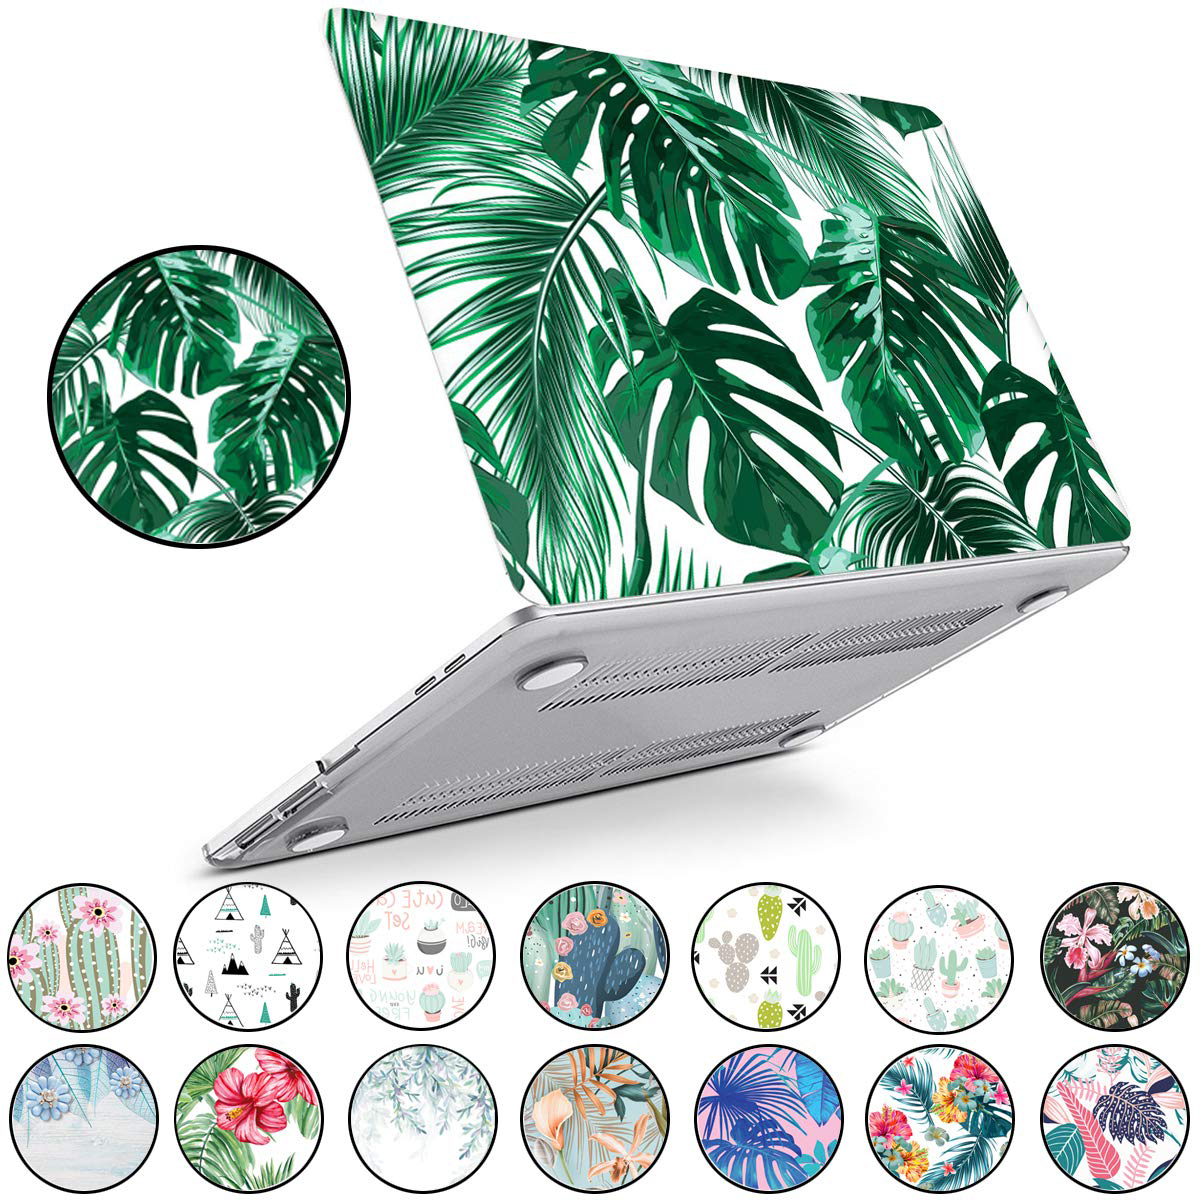 New Case For font b Macbook b font Air Pro Retina 11 12 15 Cover For